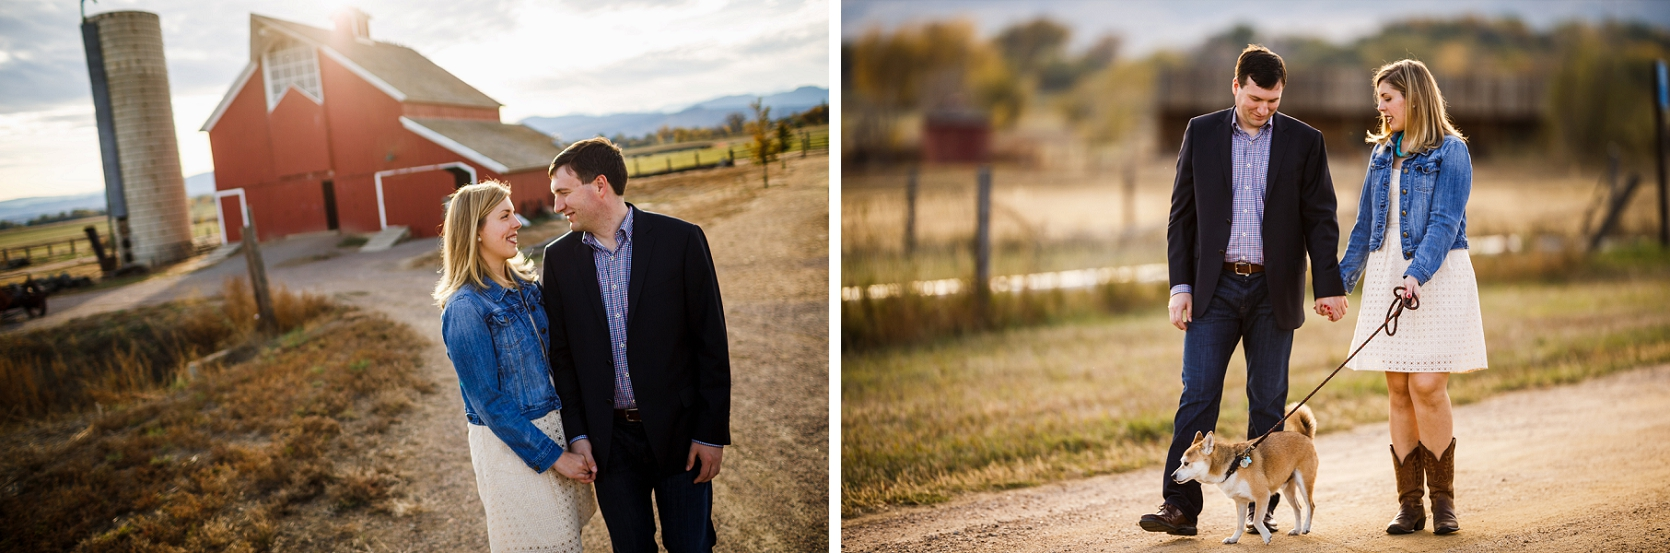 Farm_Engagement_in_Boulder_CO_0007